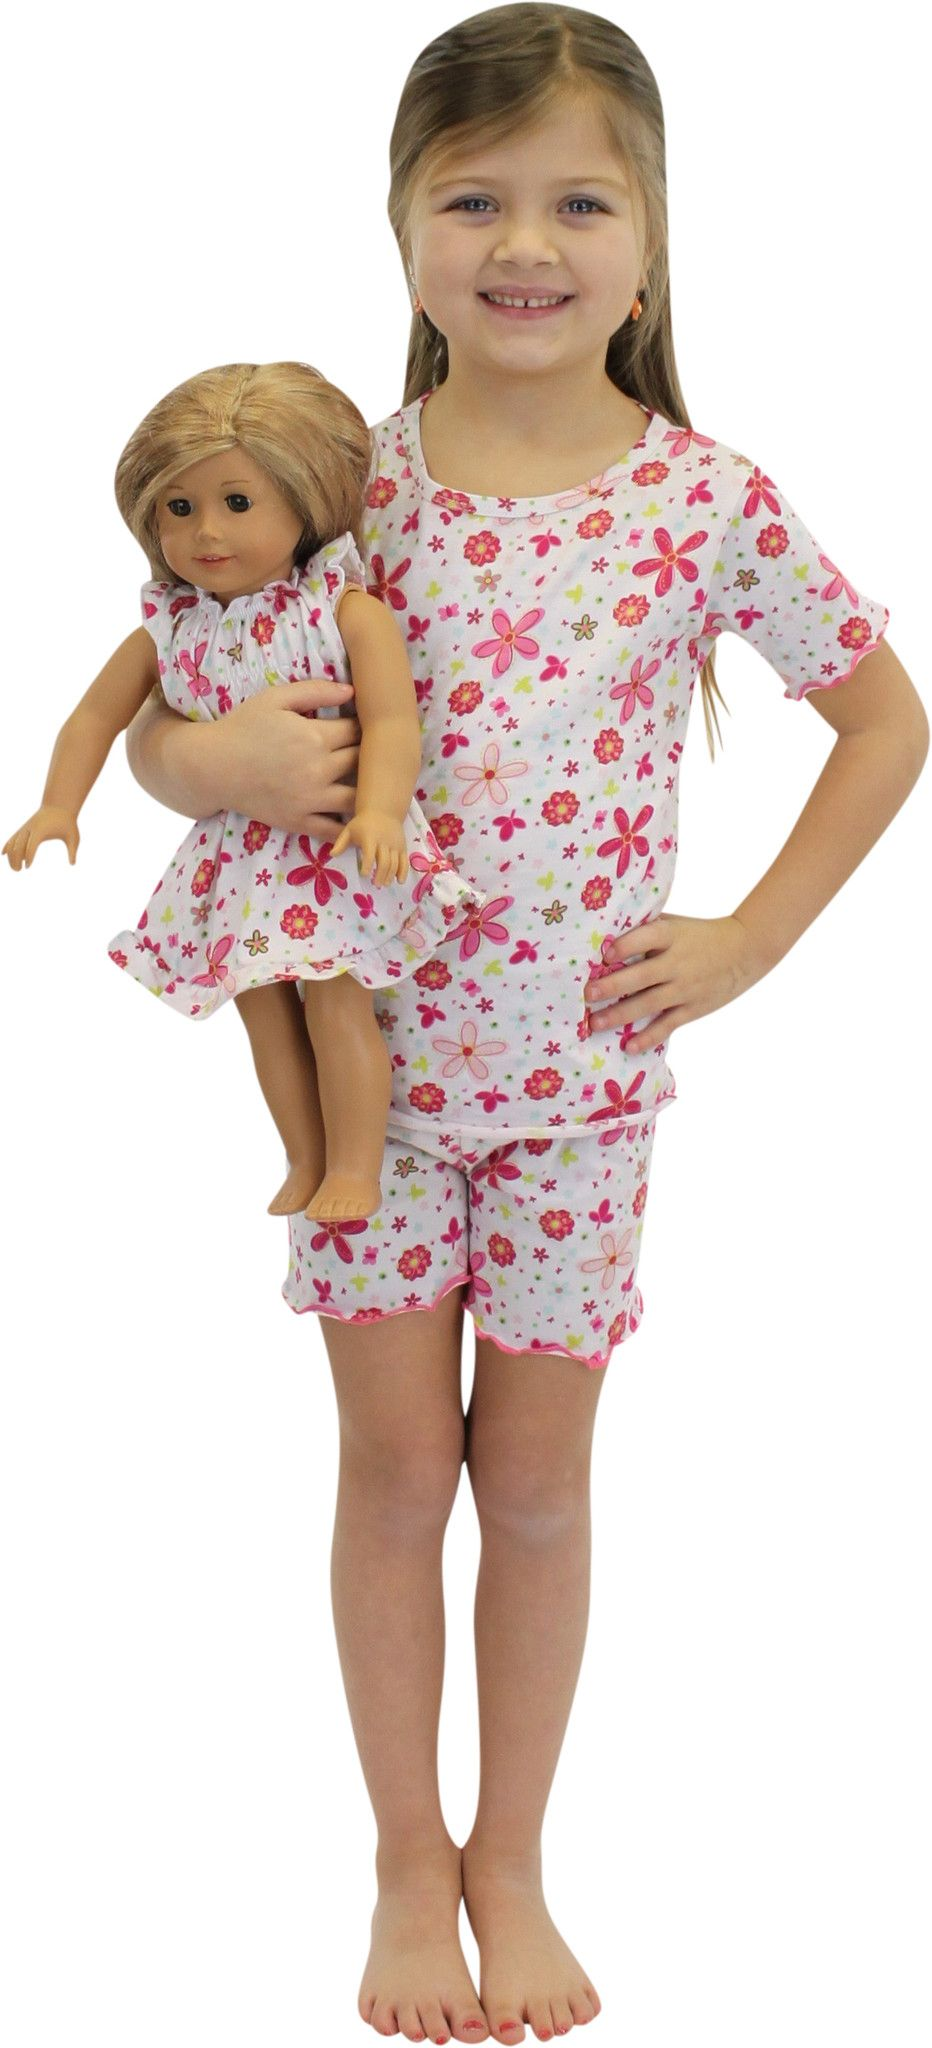 Pajamas for Kids. Want the most adorable sleepwear for your little one? Check out pajamas for kids in comfortable fabrics featuring the cutest designs and color combinations. Discover one- and two-piece sets with bold patterns and whimsical graphics. Or choose outfits with popular cartoon, comic book and movie characters on the front.